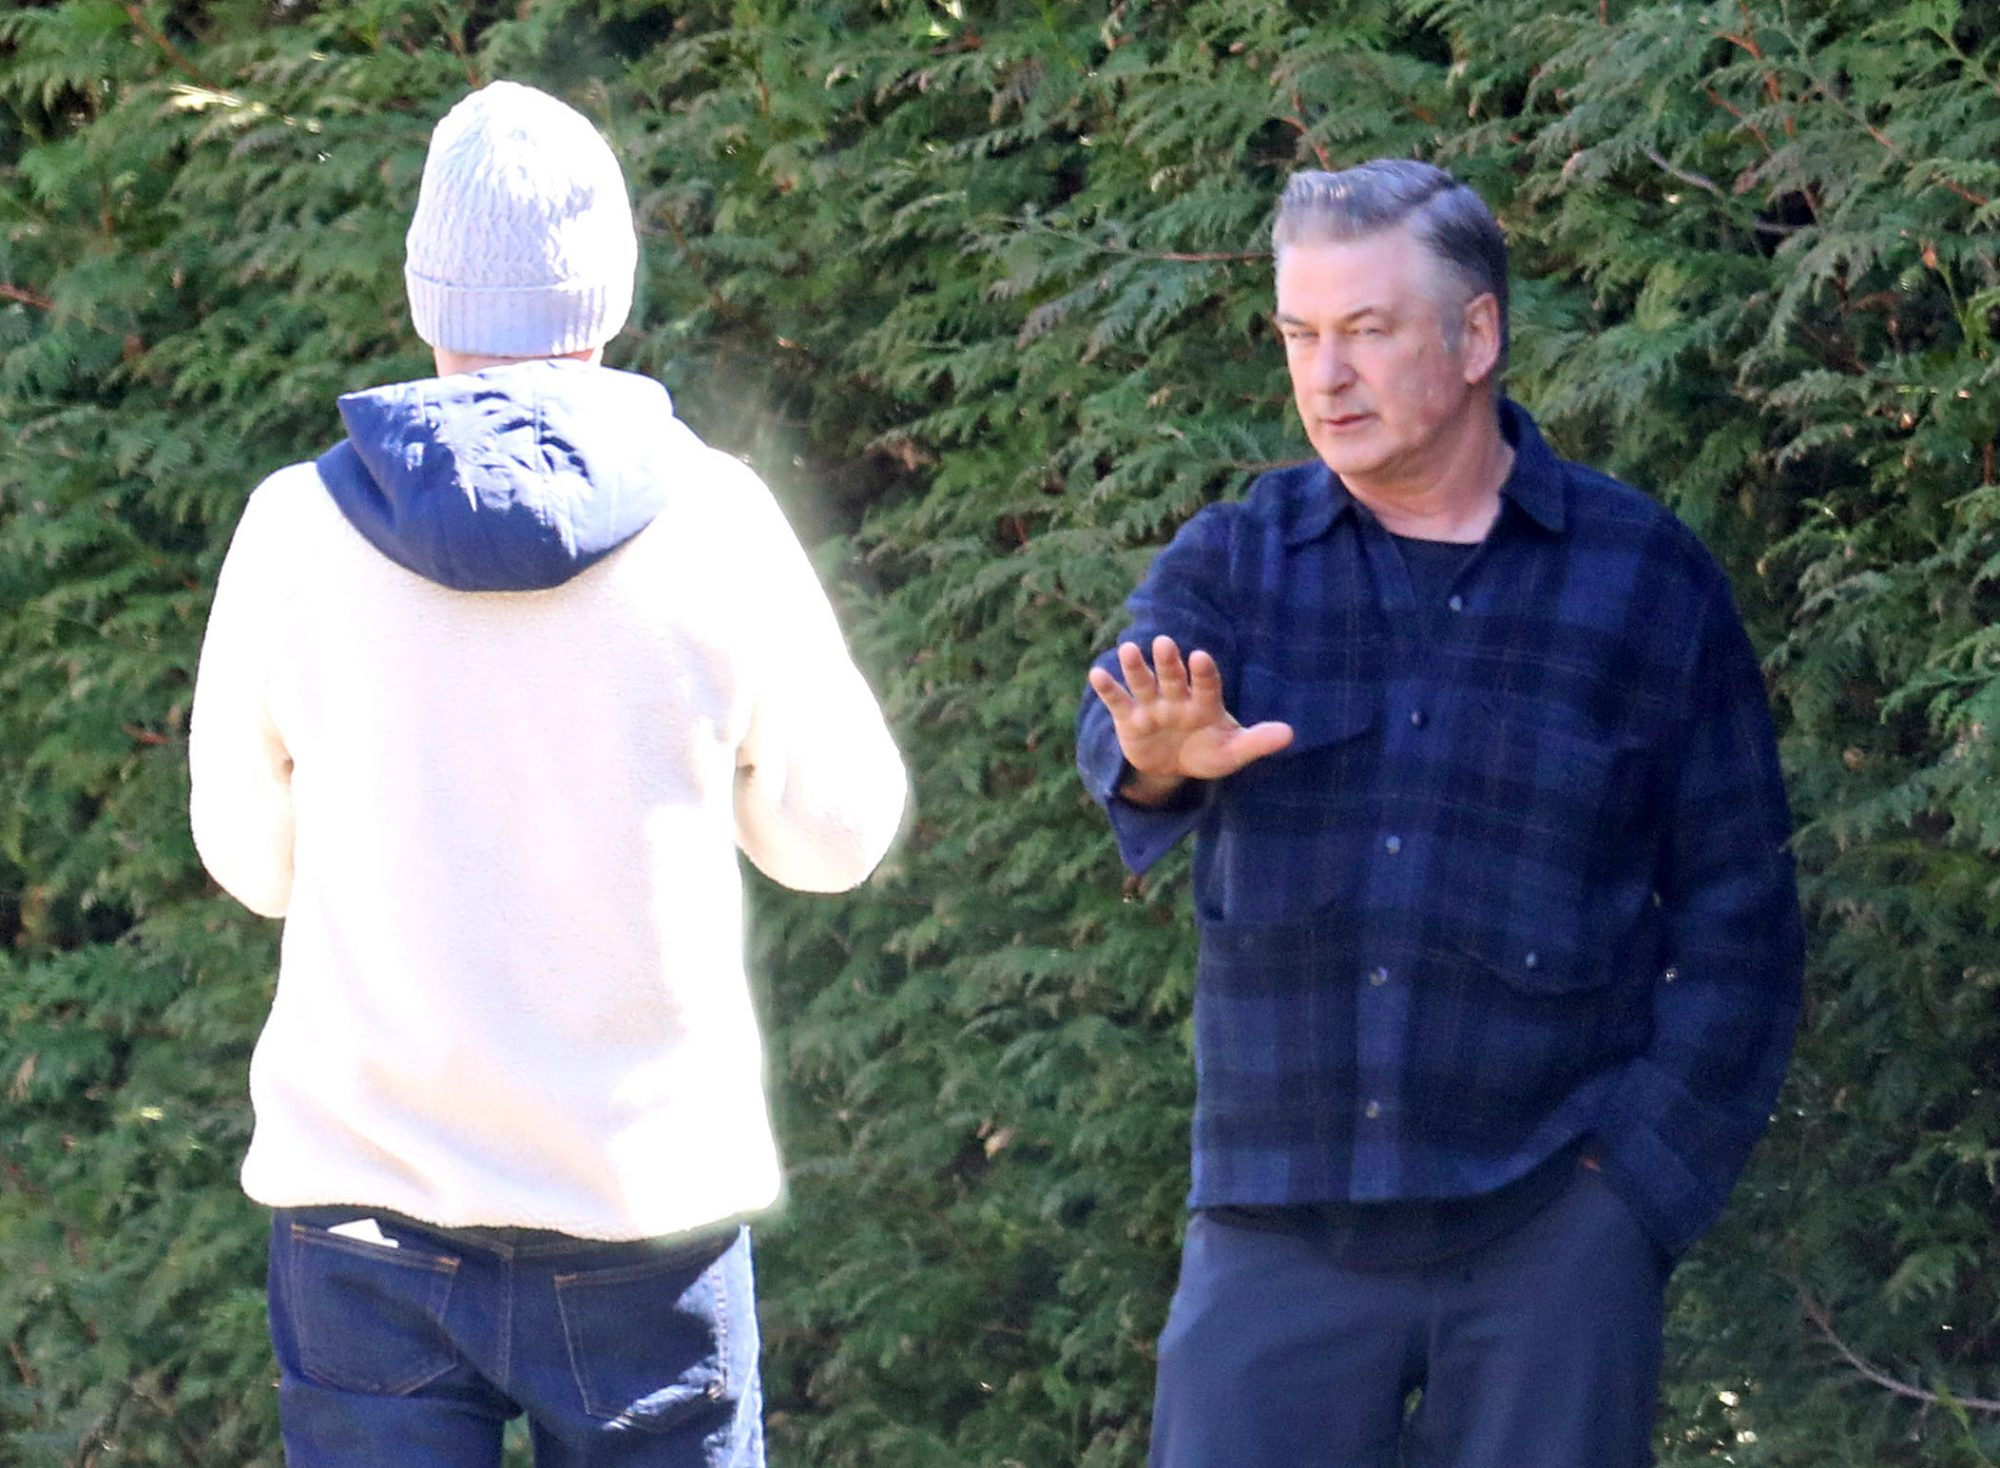 Alec Baldwin keeps his distance while chatting with friends in the Hamptons during Coronavirus pandemic. The 61 year old actor made sure to practice social distancing by keeping the recommended six feet away from other people.